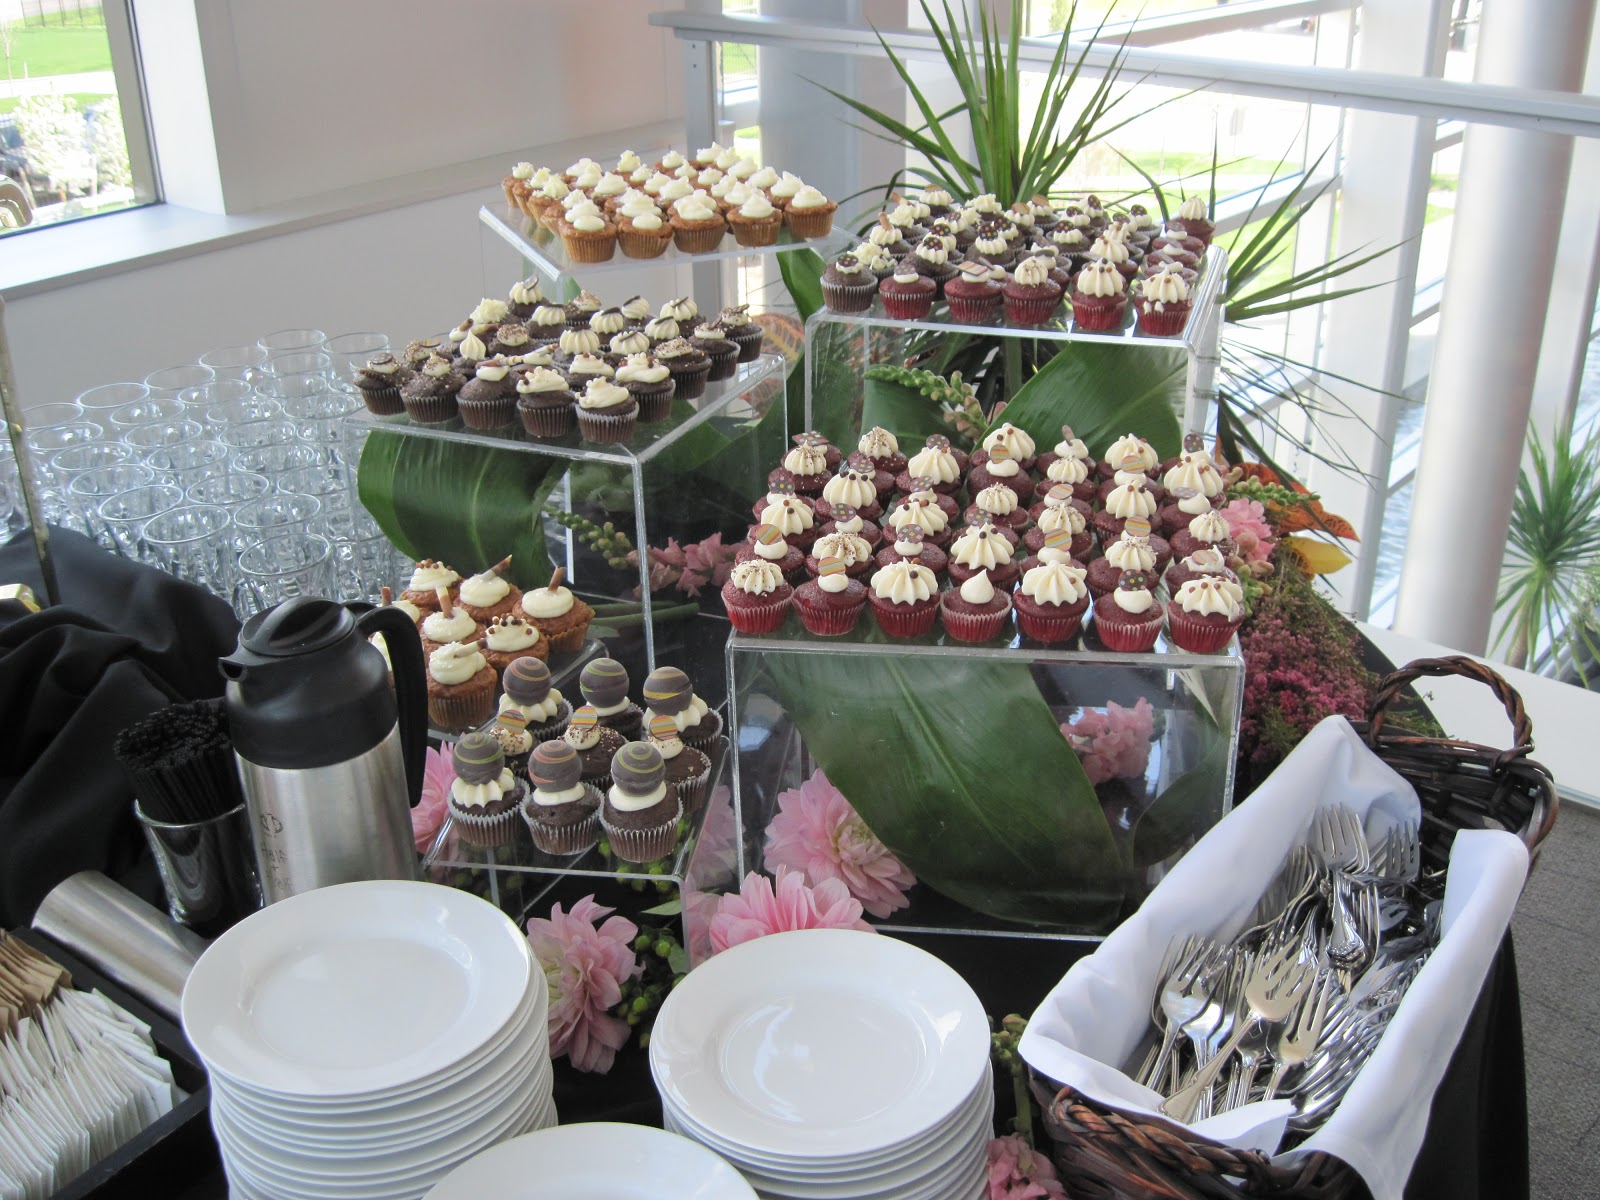 Tony Rosacci's Fine Catering: Decor and Buffets